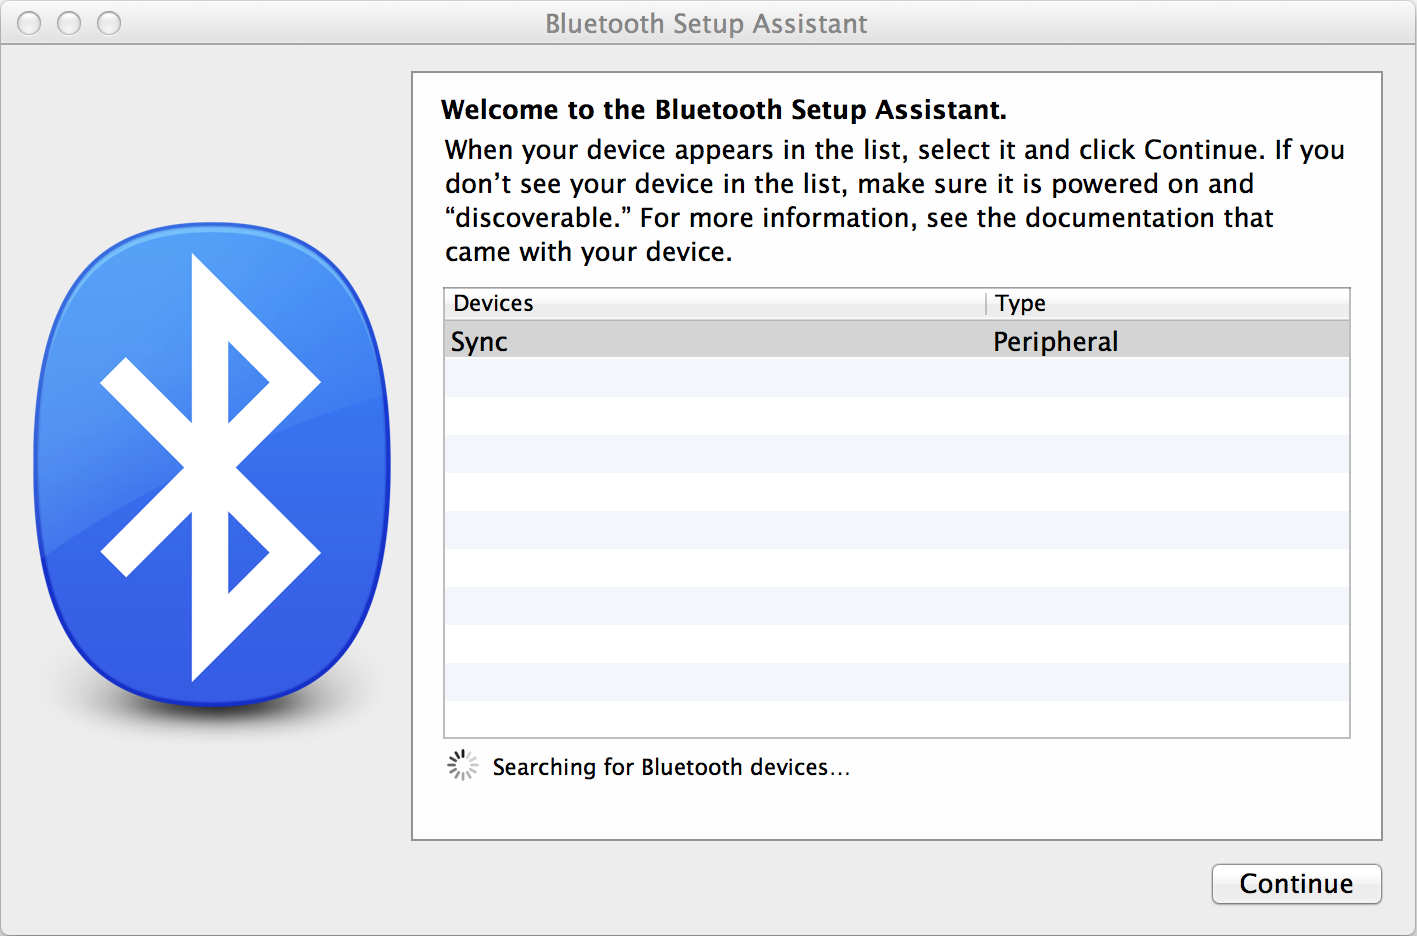 3. In the Bluetooth Setup Assistant window, Sync should appear in the list under Devices. Select Sync and select Continue. If Sync does not show up in the list, repeat step 1.